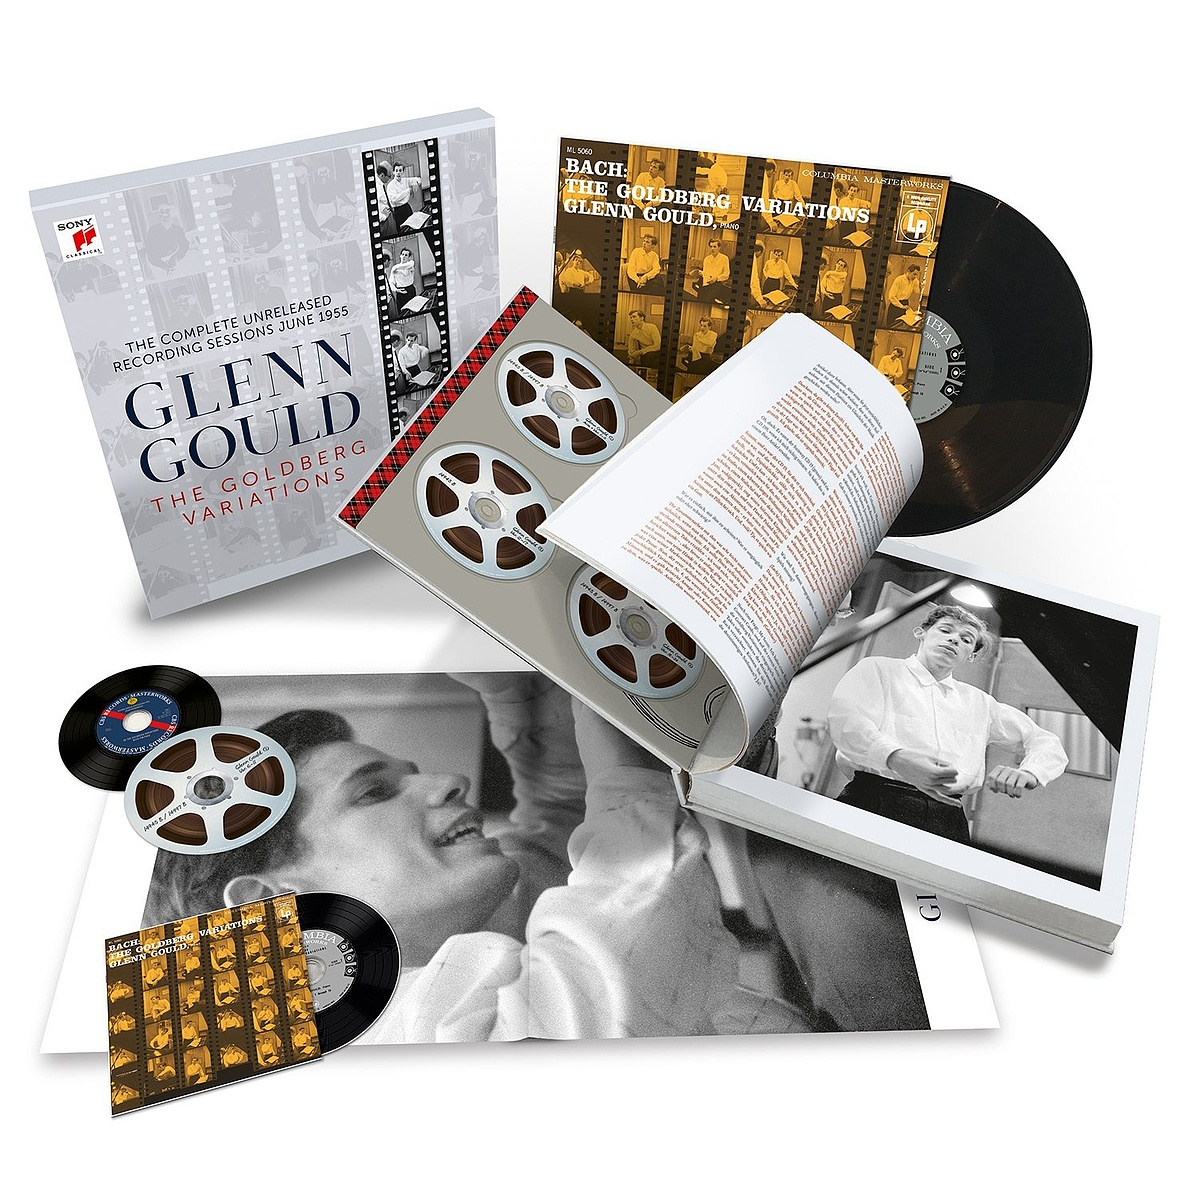 Glenn Gould - The Goldberg Variations - The Complete Unreleased Recording Sessions June 1955